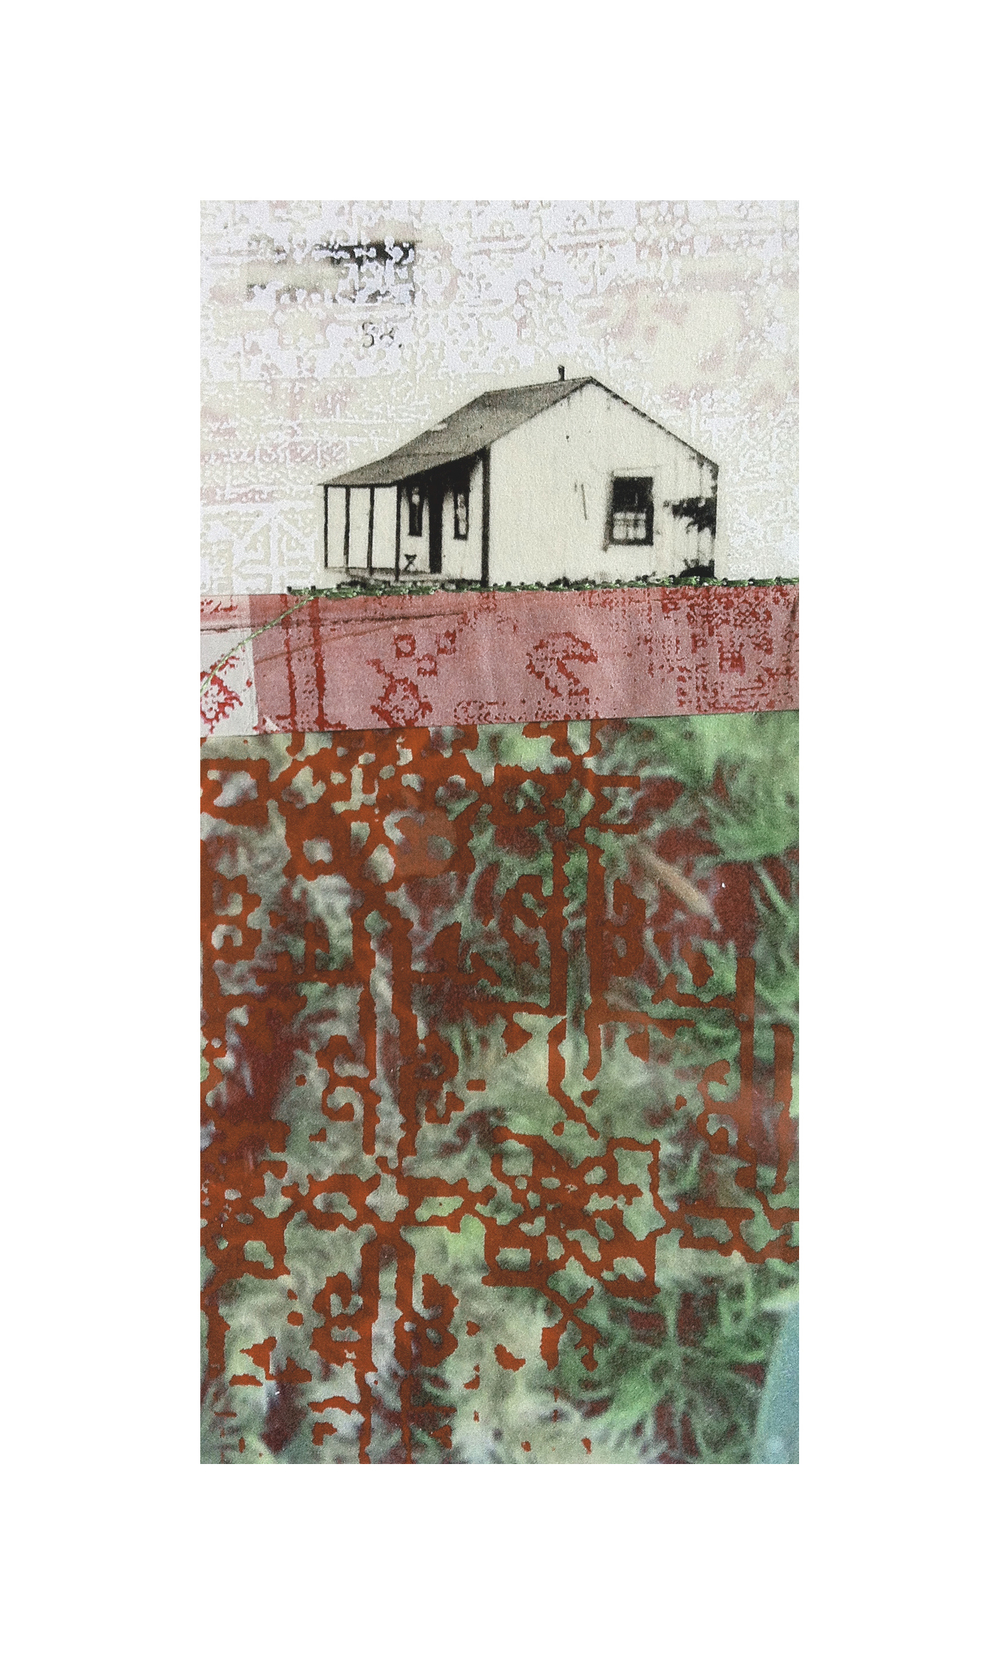 "Lawnside Tapestry 7   Etching, chine colle, screenprint, thread  8"" x 10"", 2013"